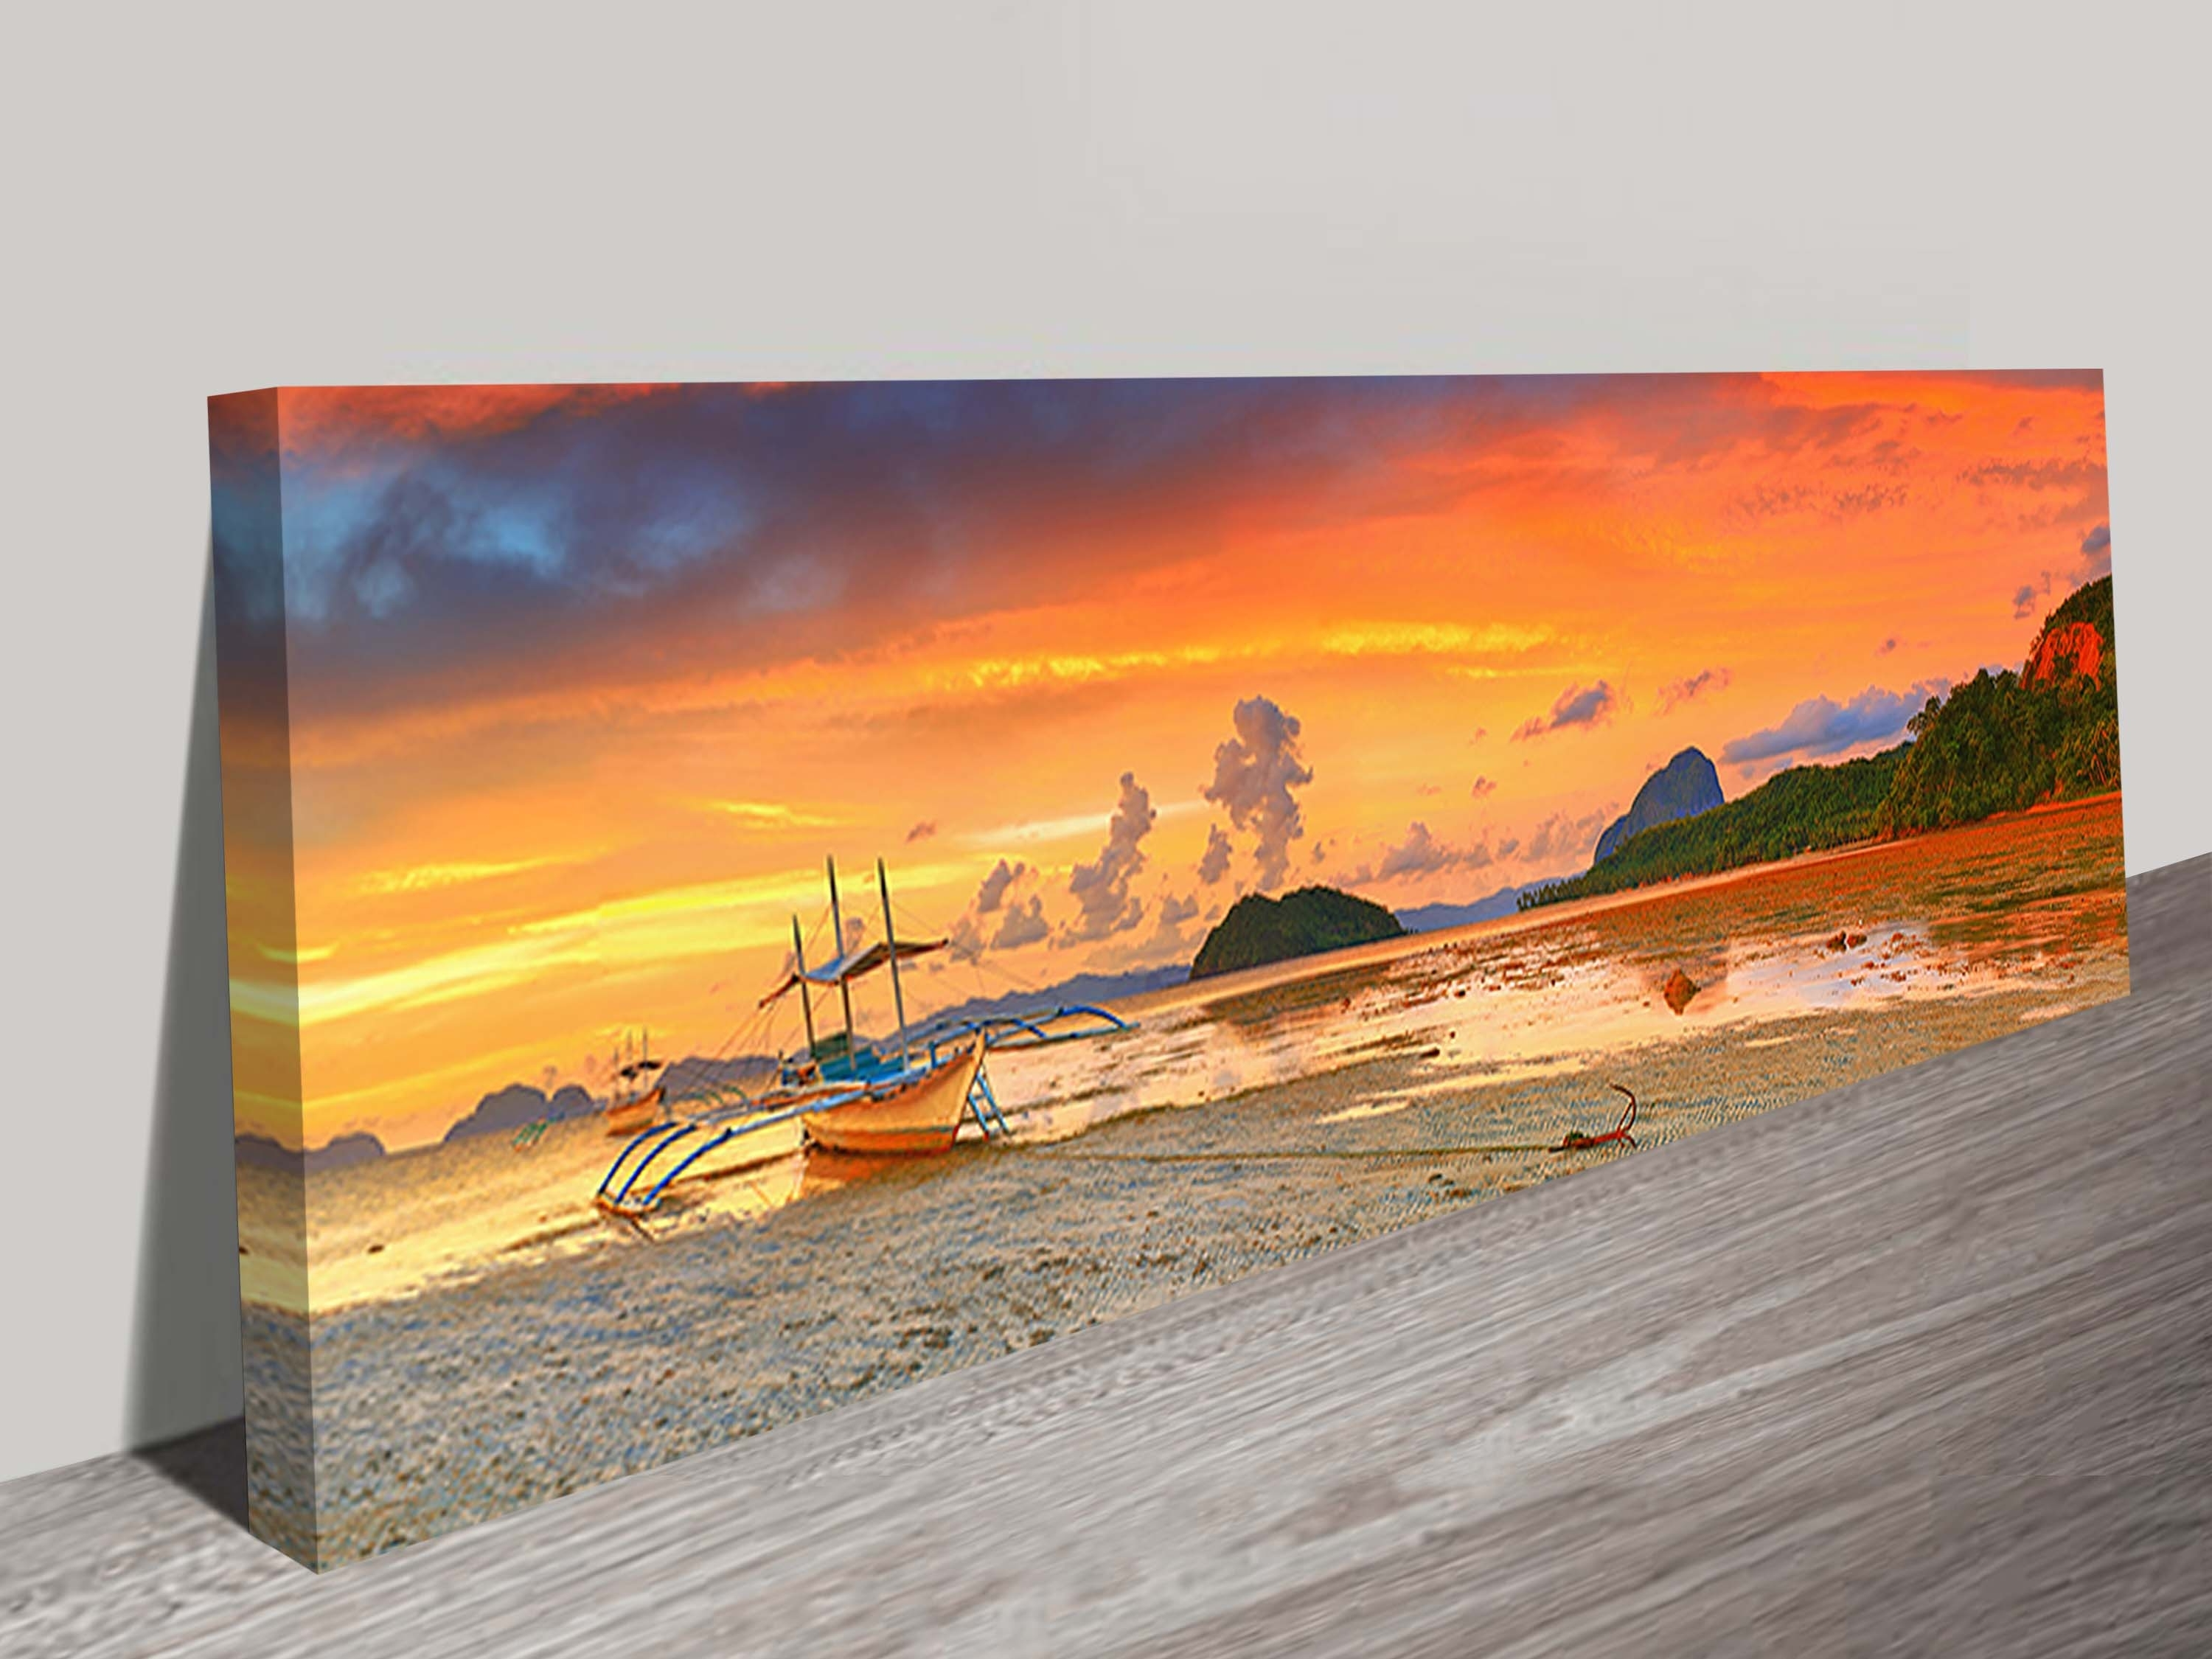 Beaches Archives – Blue Horizon Prints Regarding Most Popular Canvas Wall Art Of Philippines (View 3 of 15)